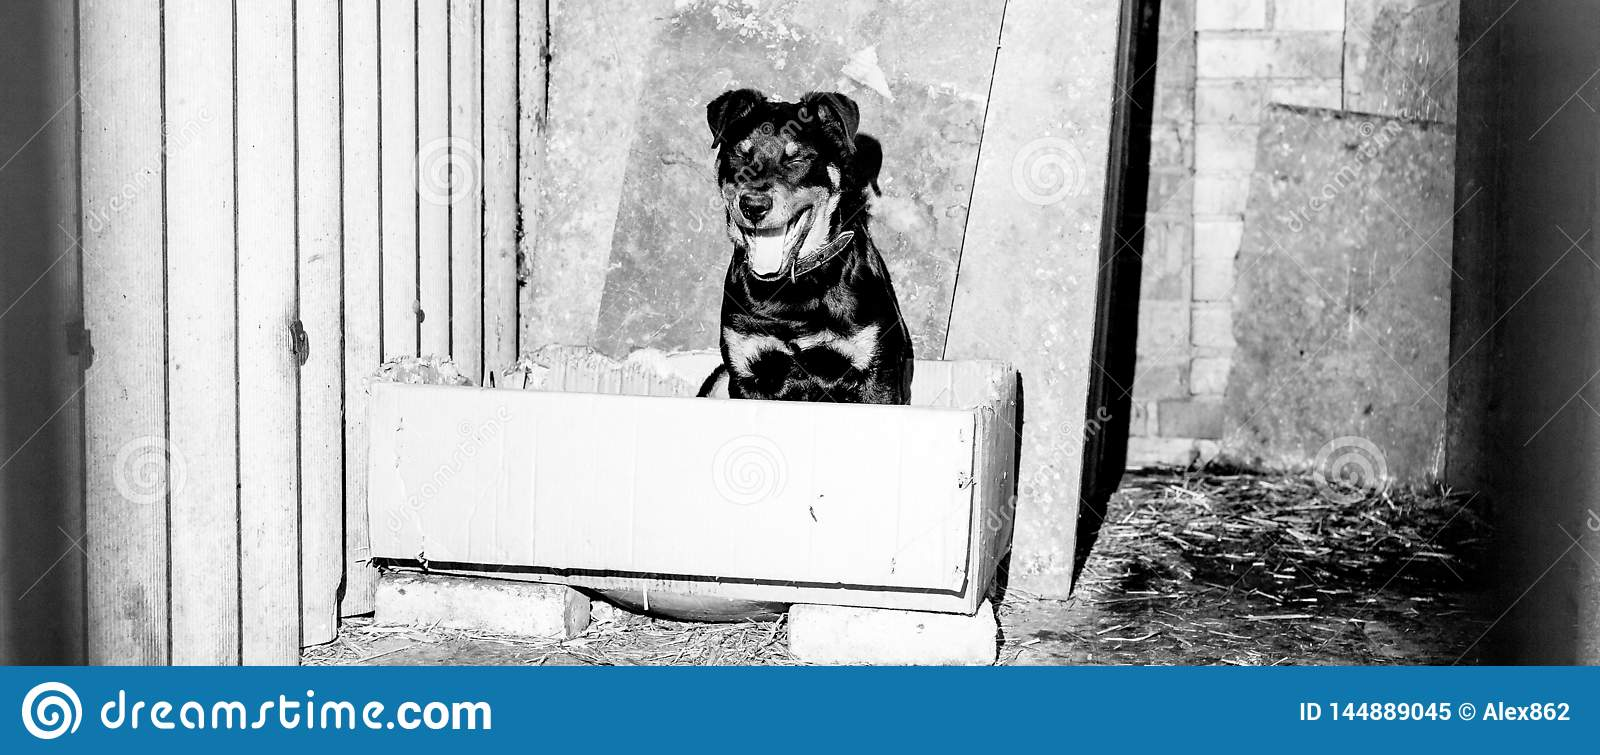 Little cute rottweiler puppy in an aviary. Monochrome stylish photo